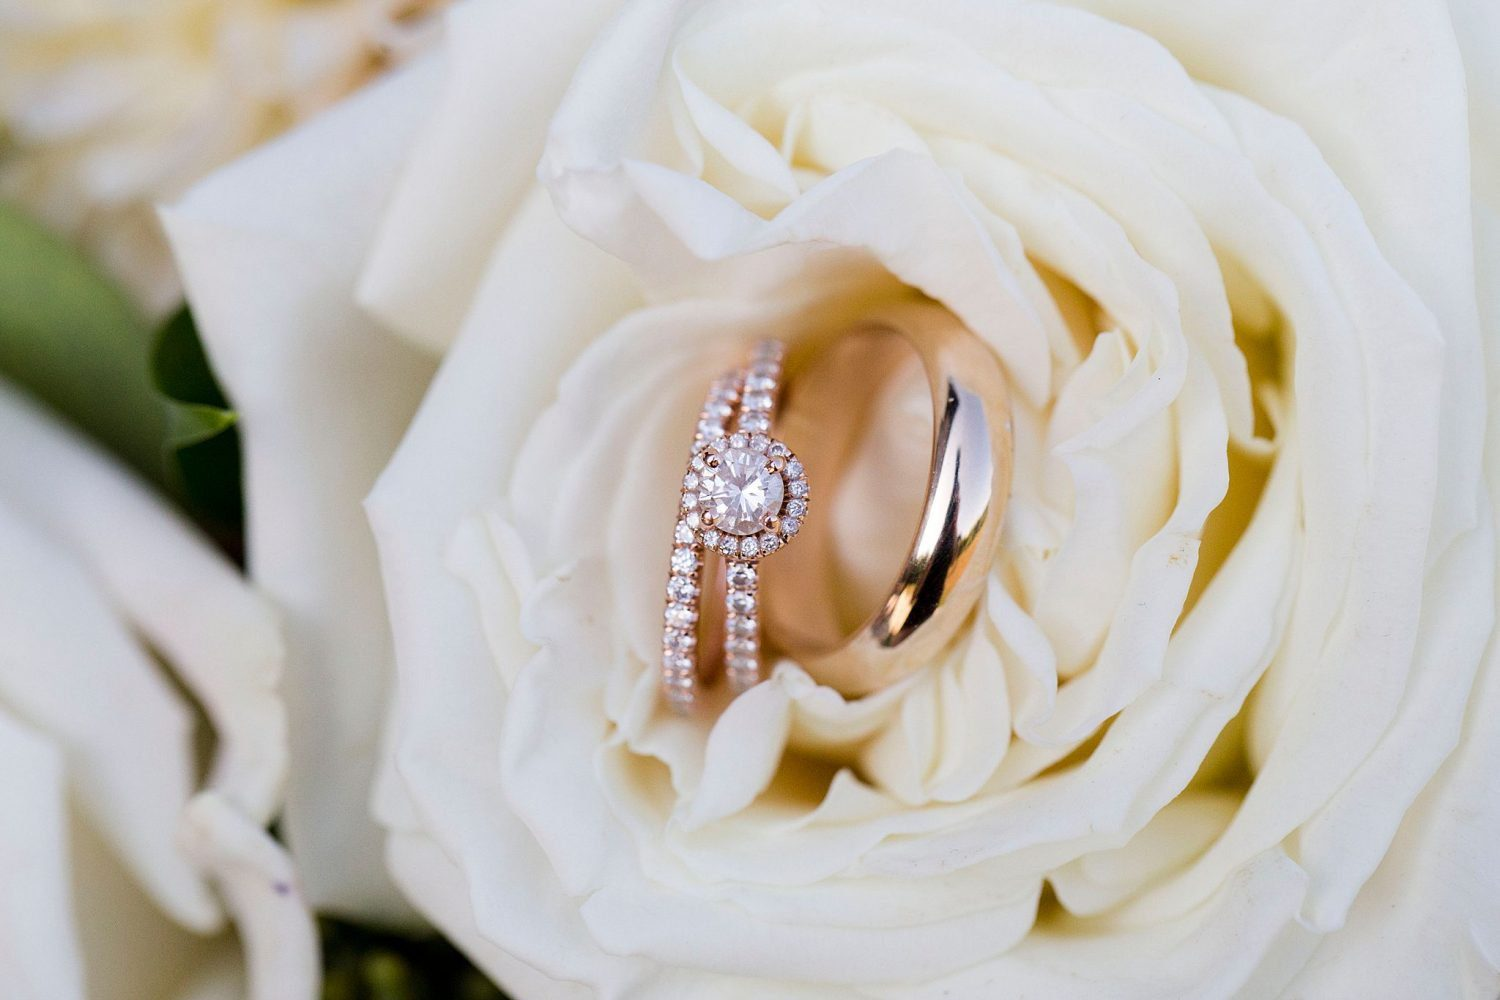 Wedding rings inside a white rose.